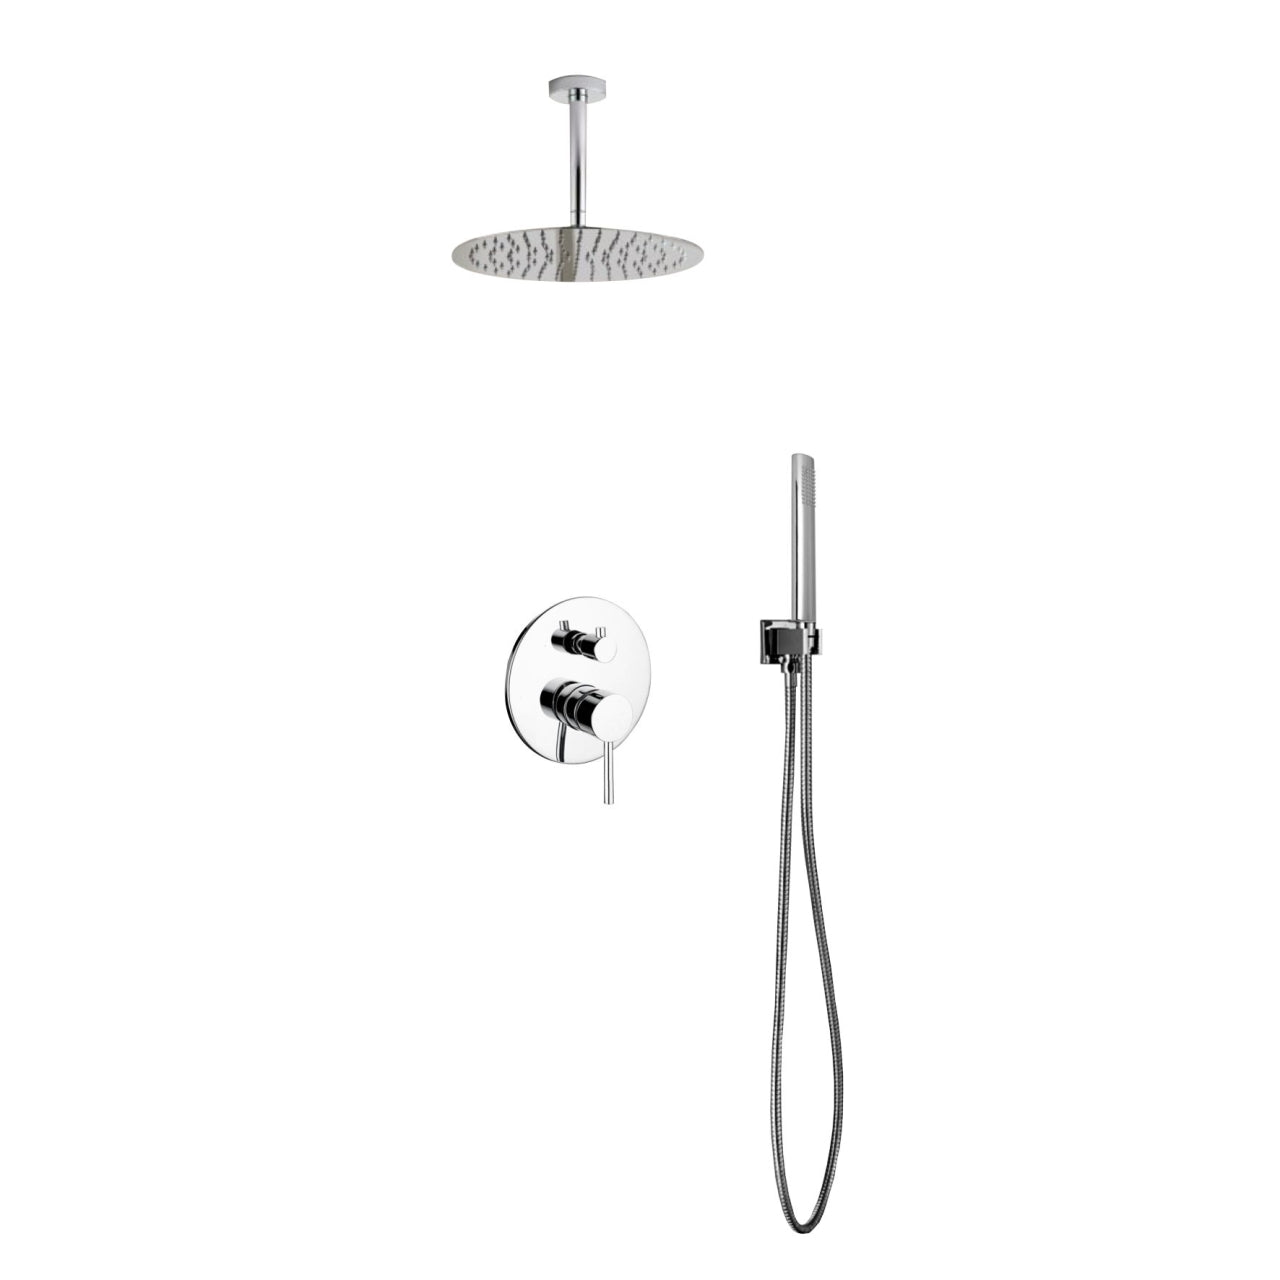 "AQUA RONDO- 12"" Ceiling Mount Shower Faucet With Handheld - Construction Commodities Supply Inc."